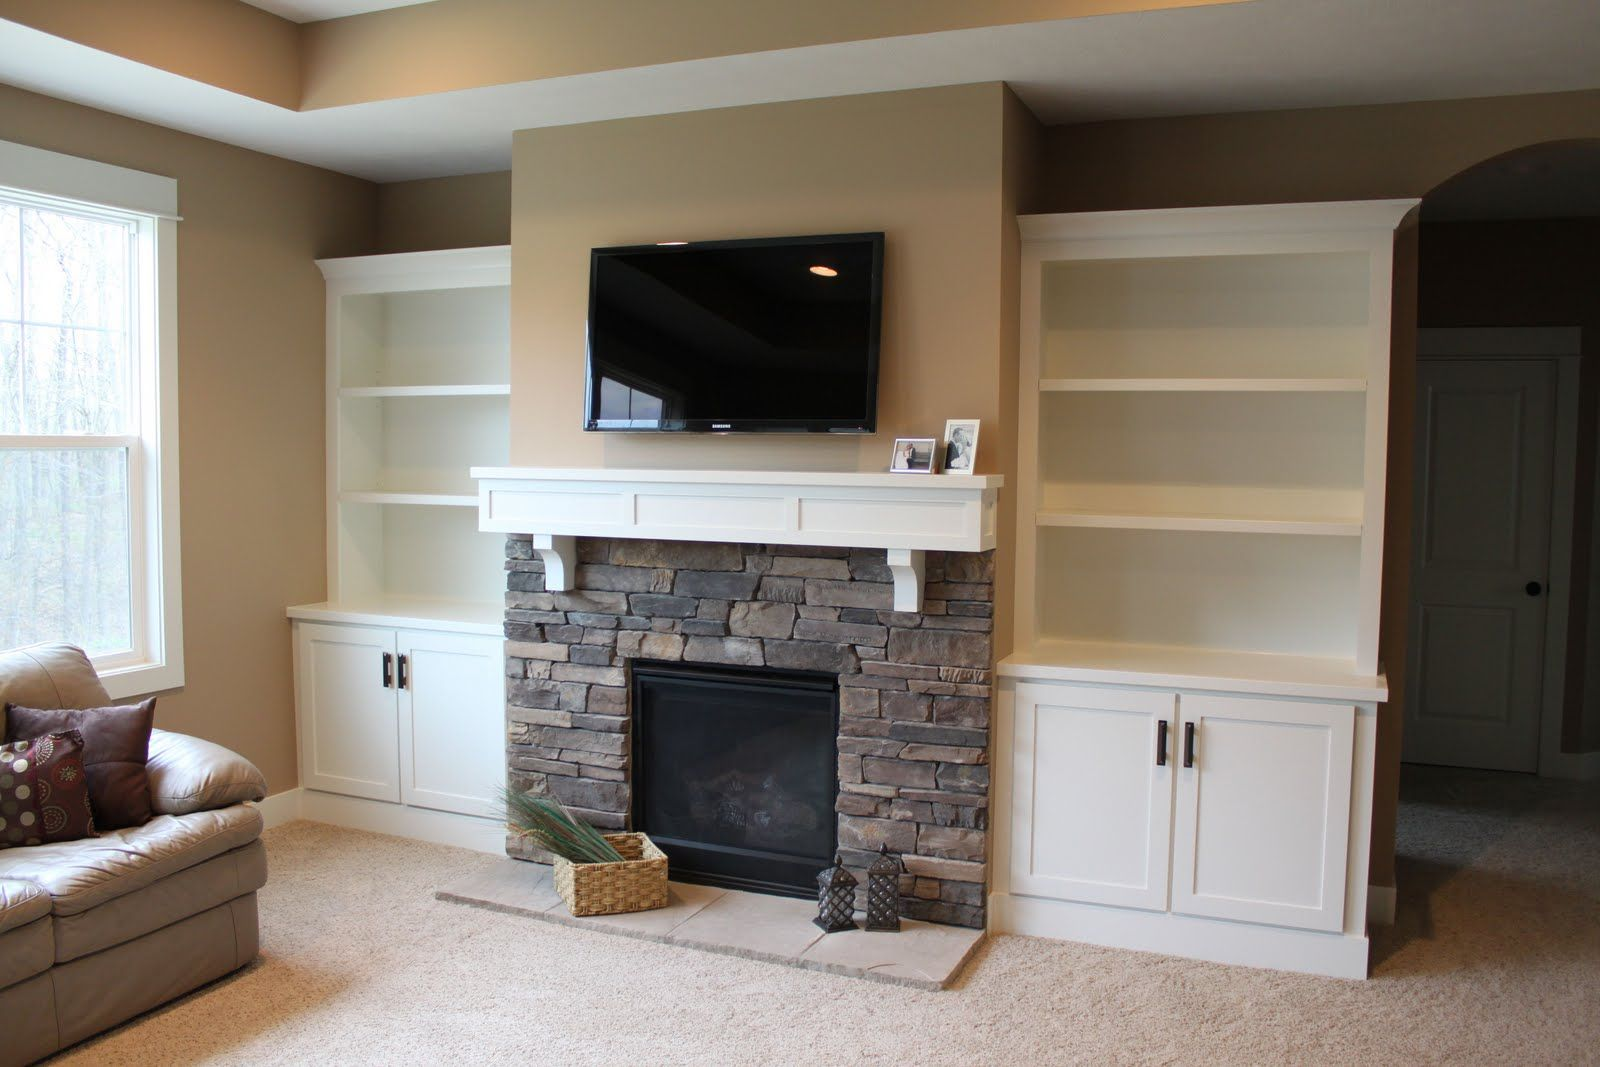 built-in shelves surrounding fireplace | ... built in cabinets and shelving  surrounding